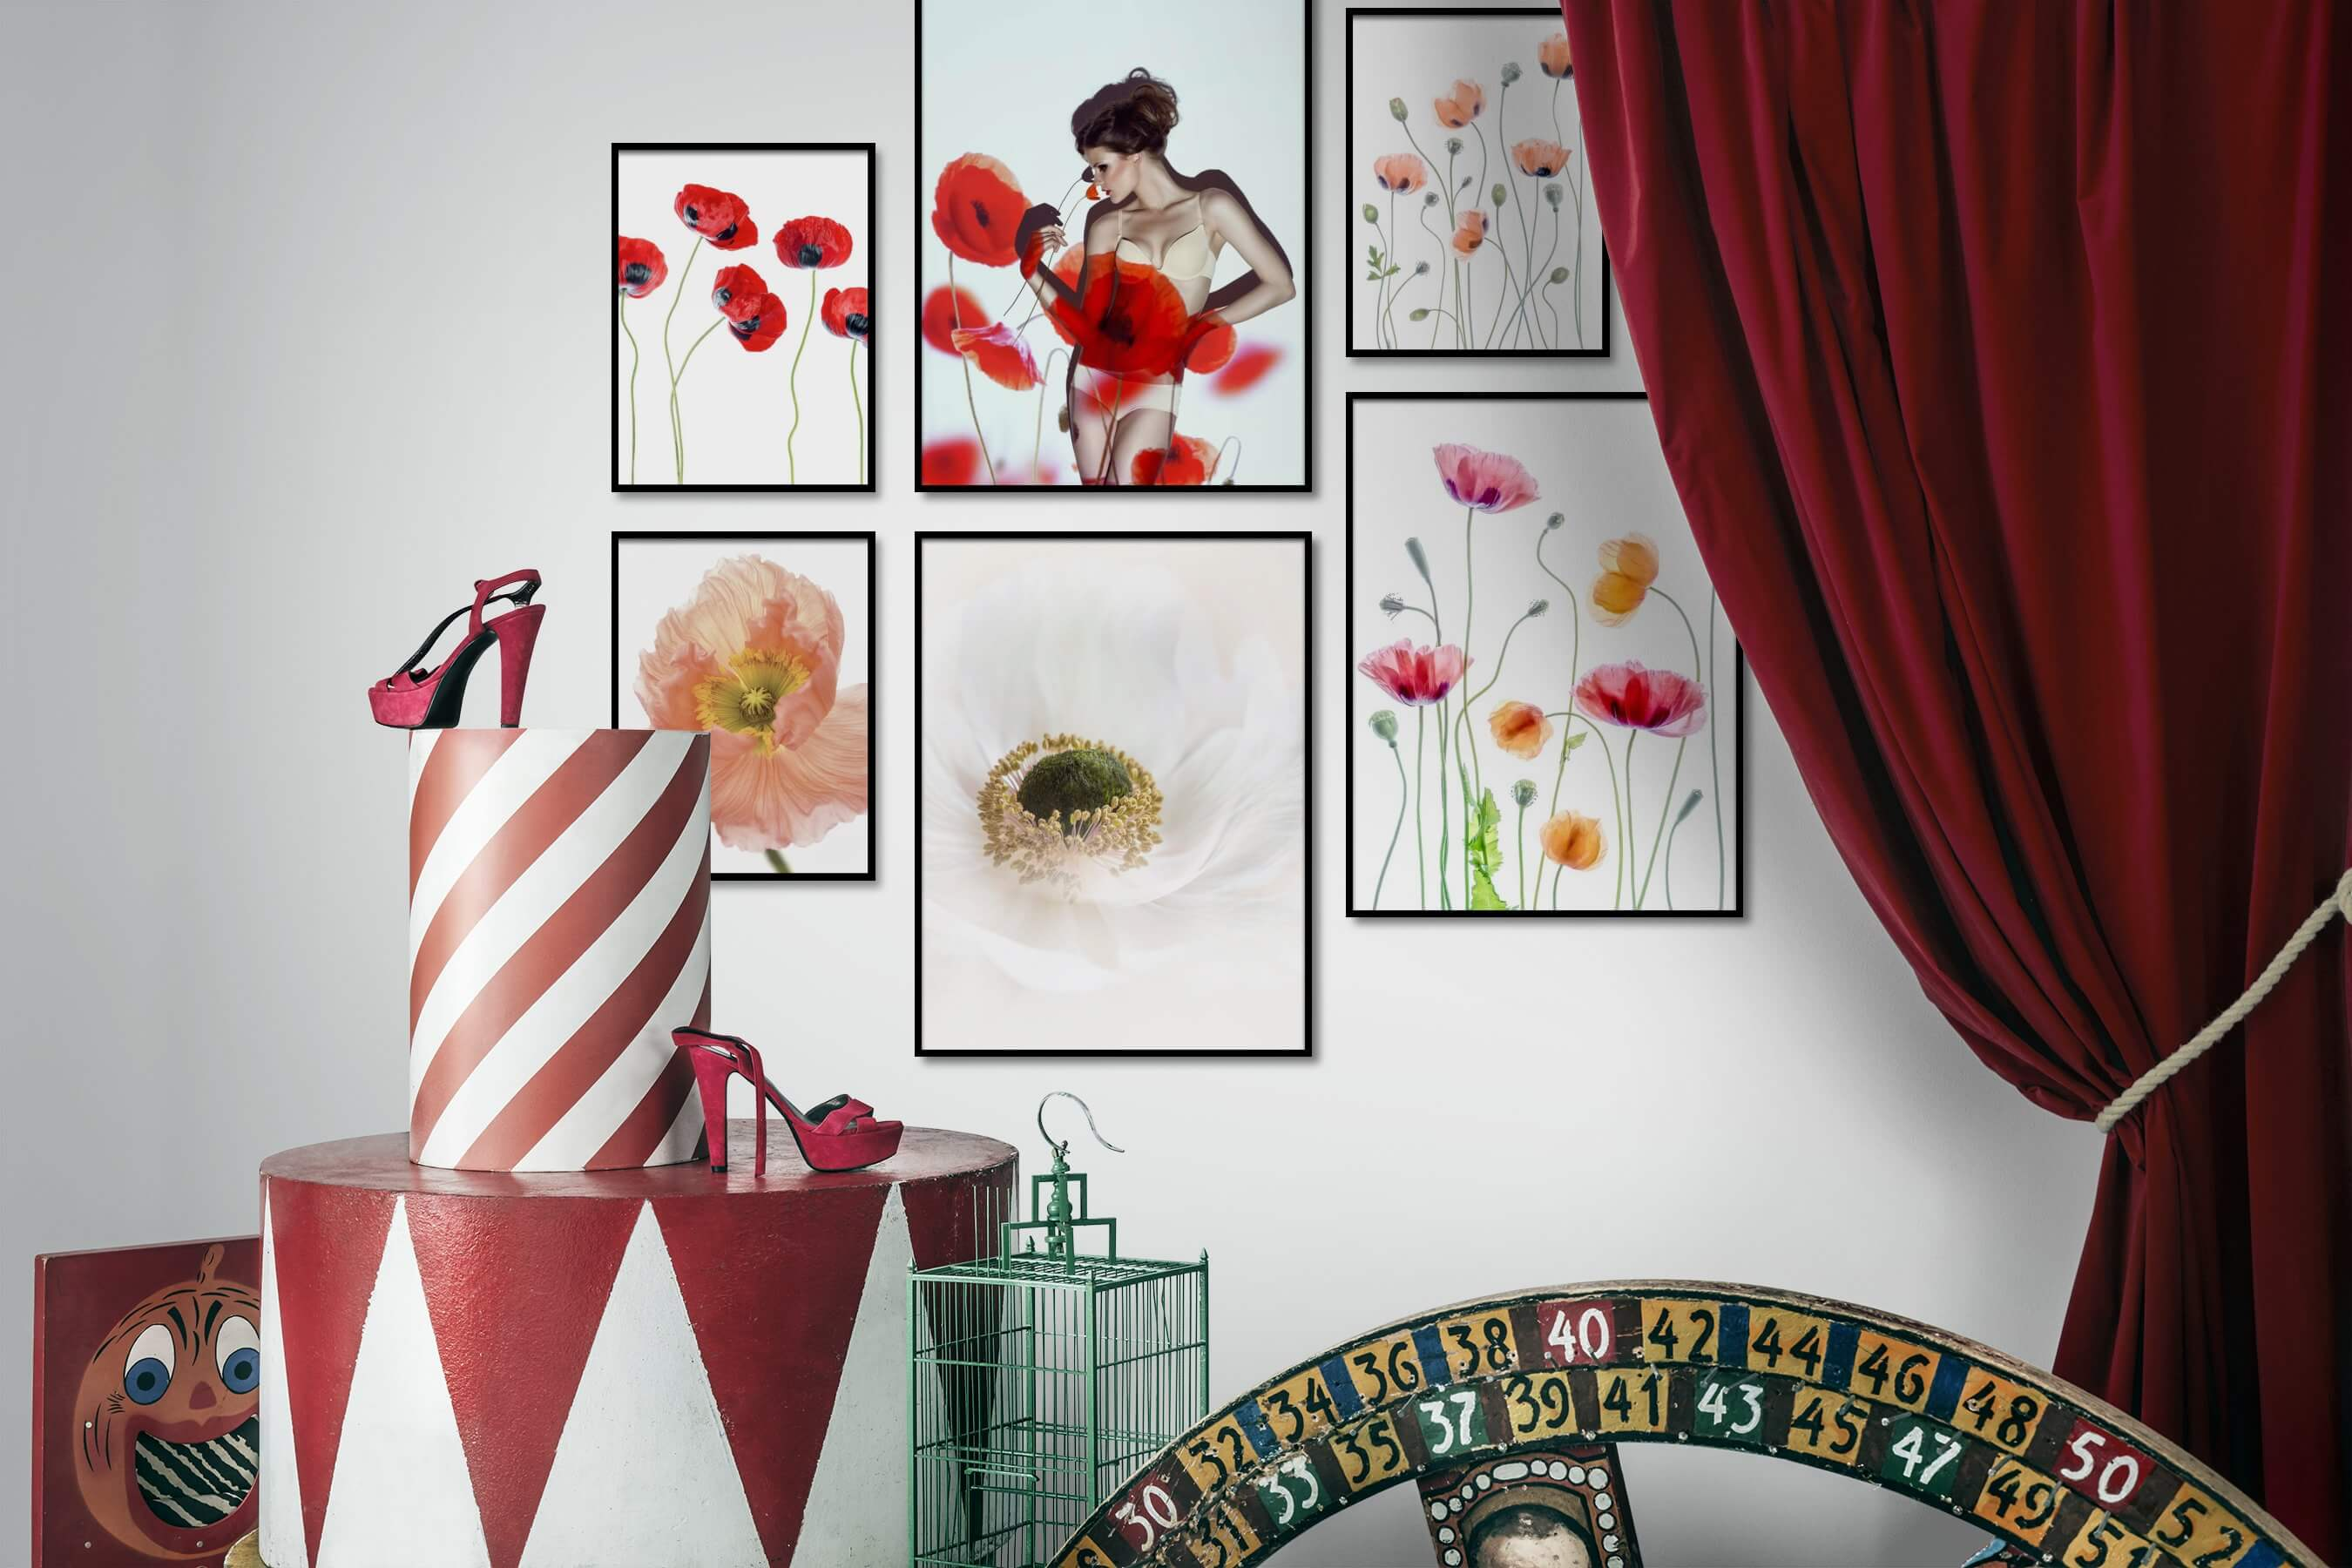 Gallery wall idea with six framed pictures arranged on a wall depicting Bright Tones, For the Moderate, Flowers & Plants, Fashion & Beauty, For the Minimalist, and Mindfulness